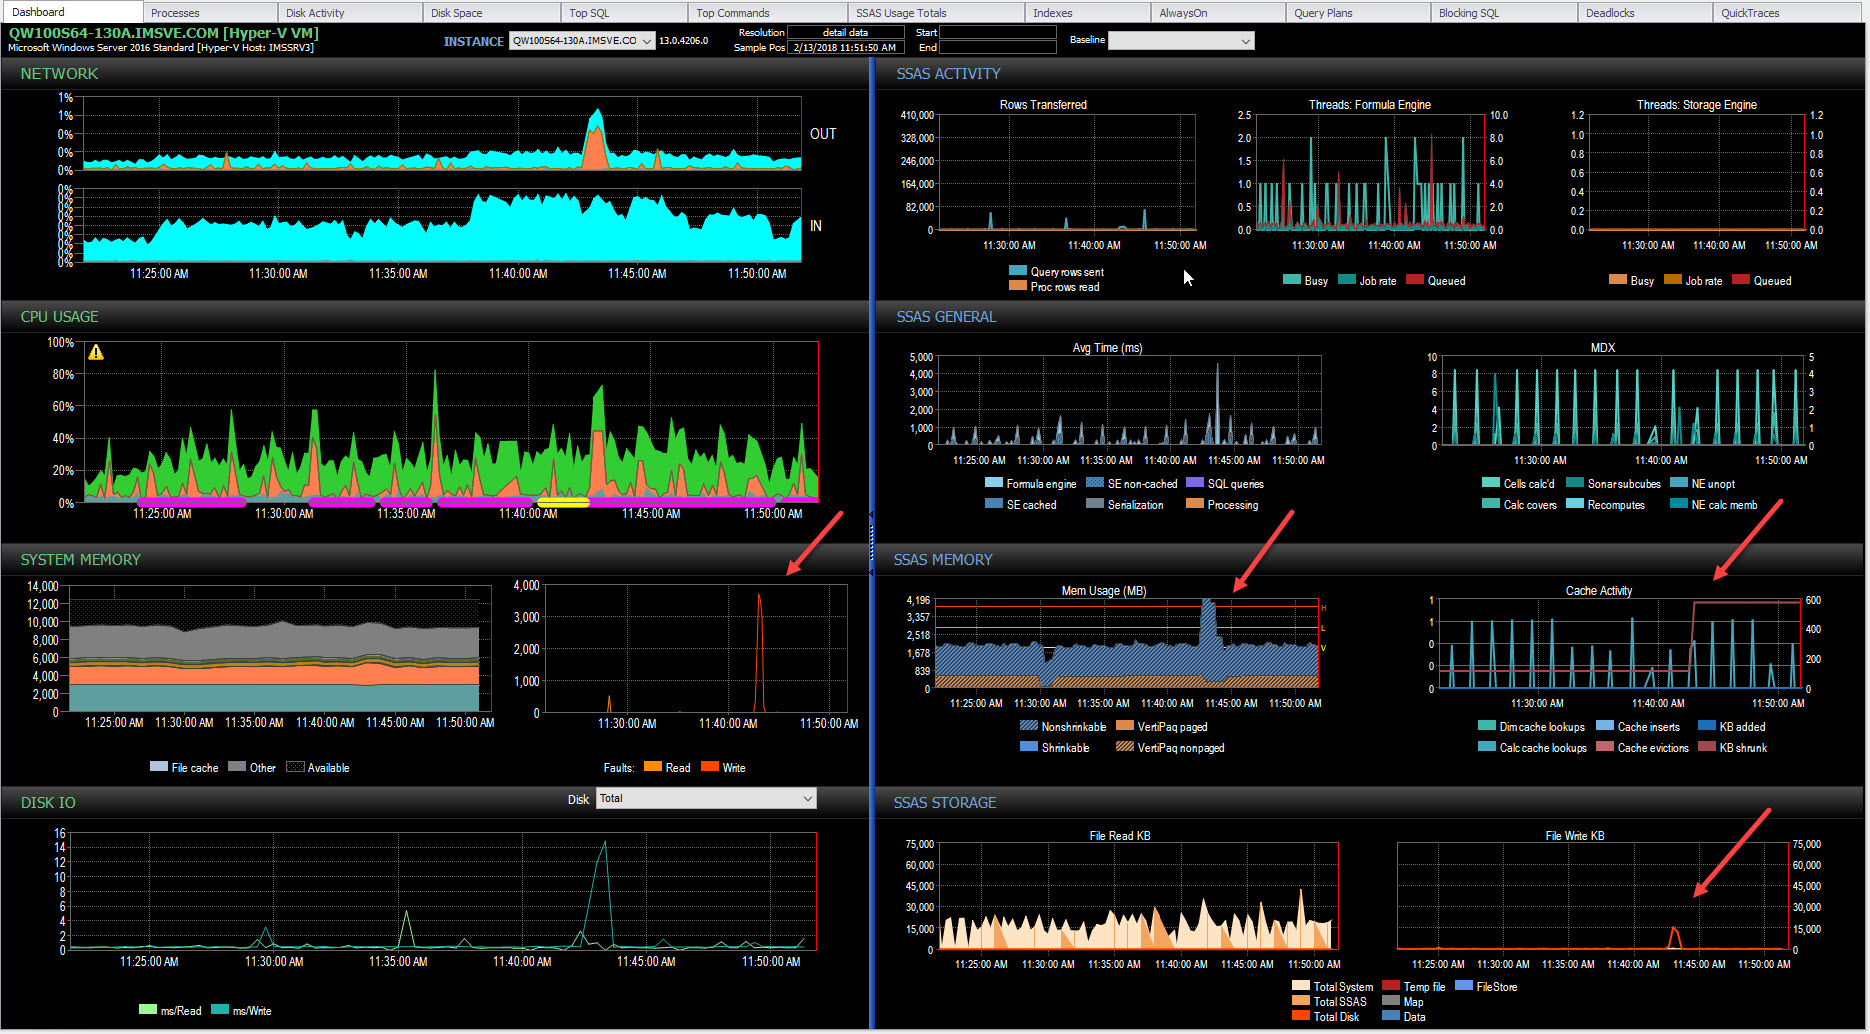 The SQL Sentry Performance Analysis Dashboard